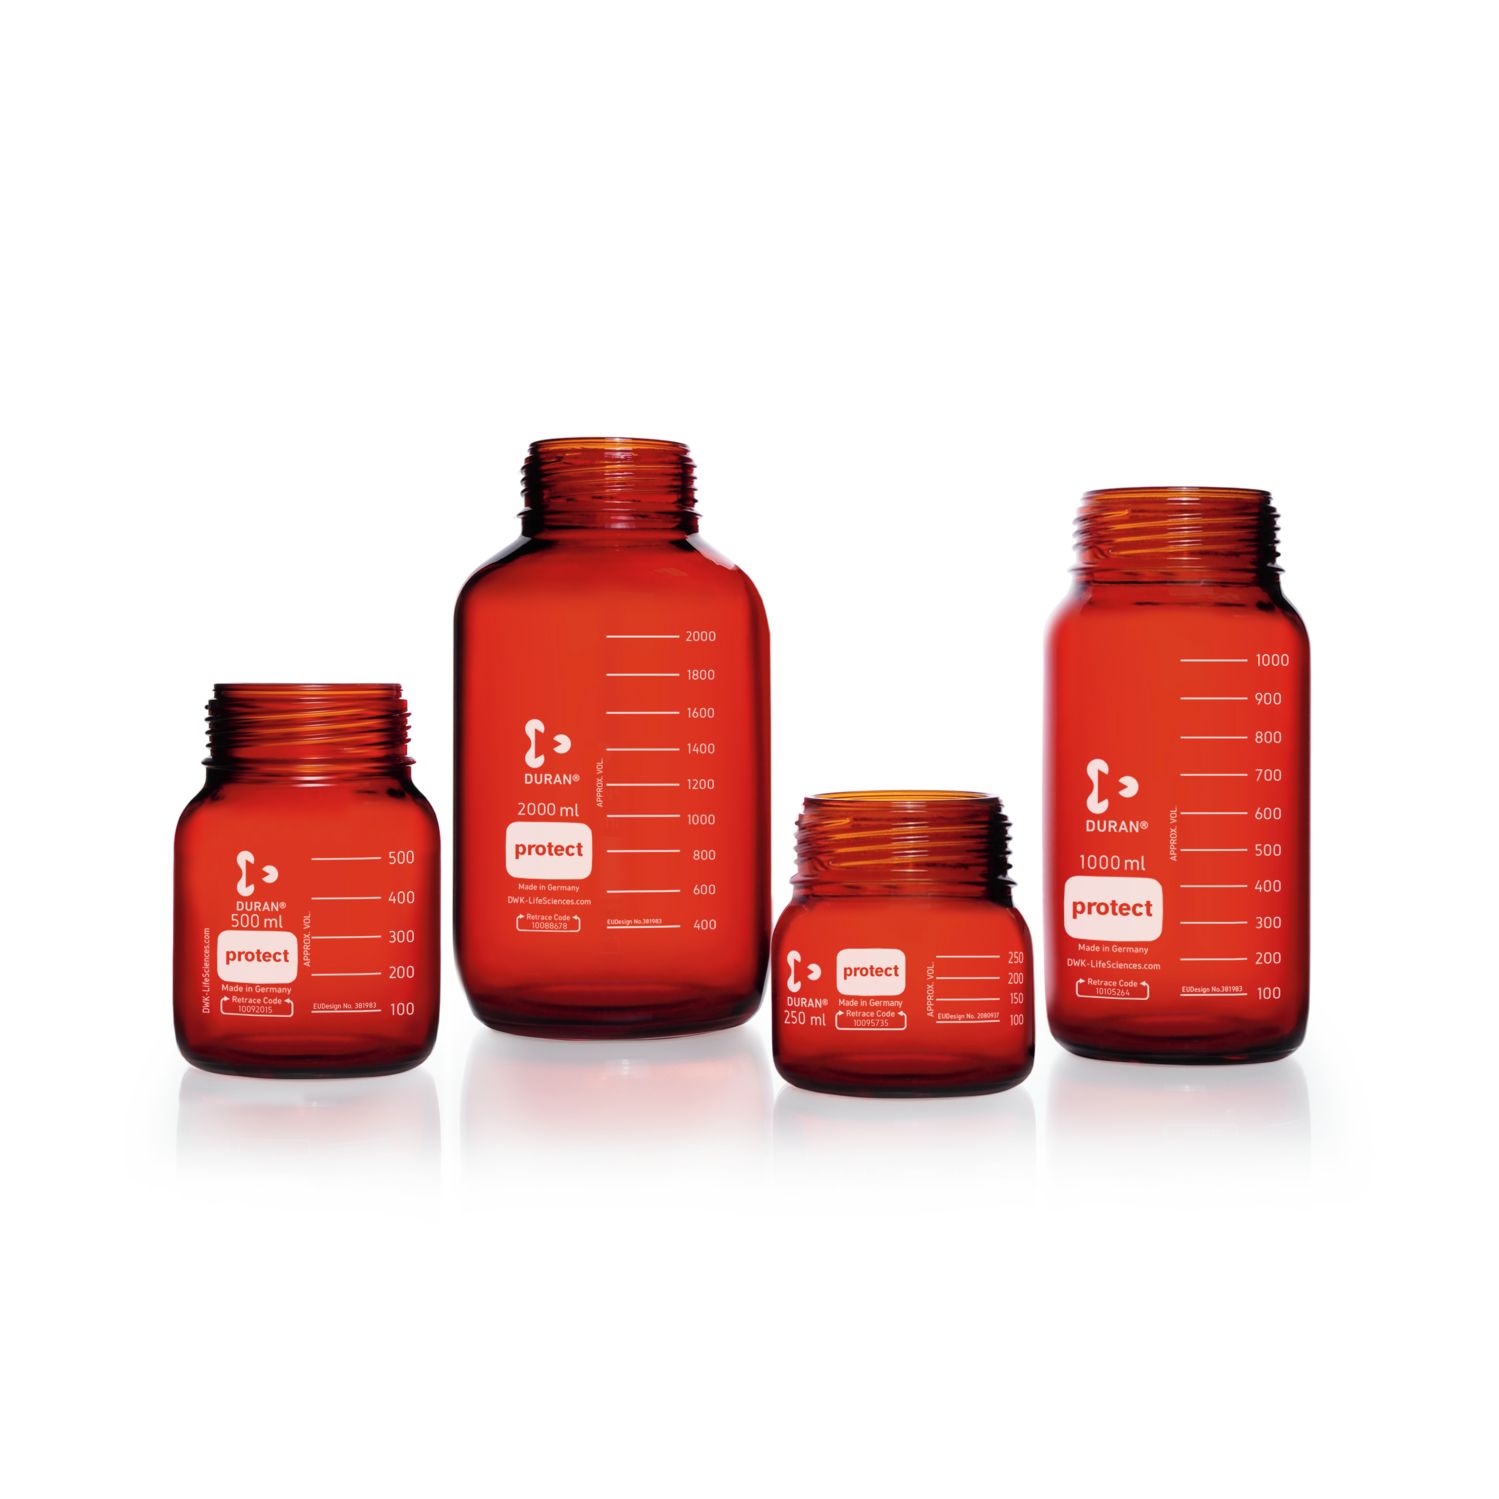 DURAN® Laboratory Bottle Wide Mouth GLS 80®, Protect coated Amber, Supplied as bottle only, no cap, 5000 mL